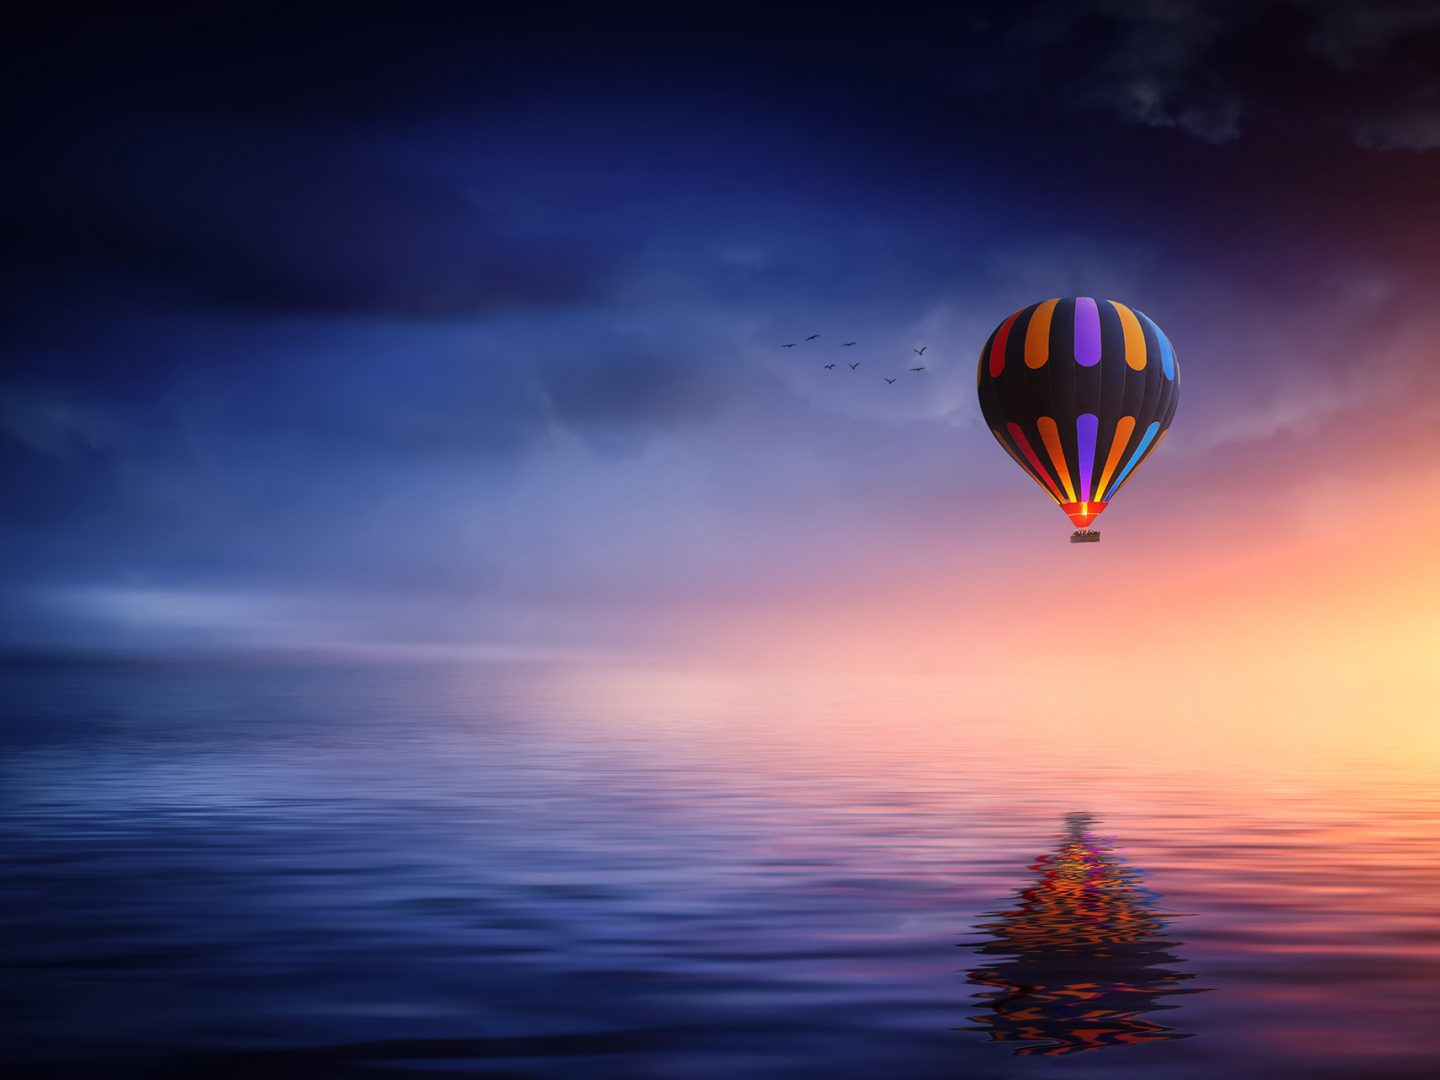 3D Hot Air Balloon Screen Saver 1.1 Free Download